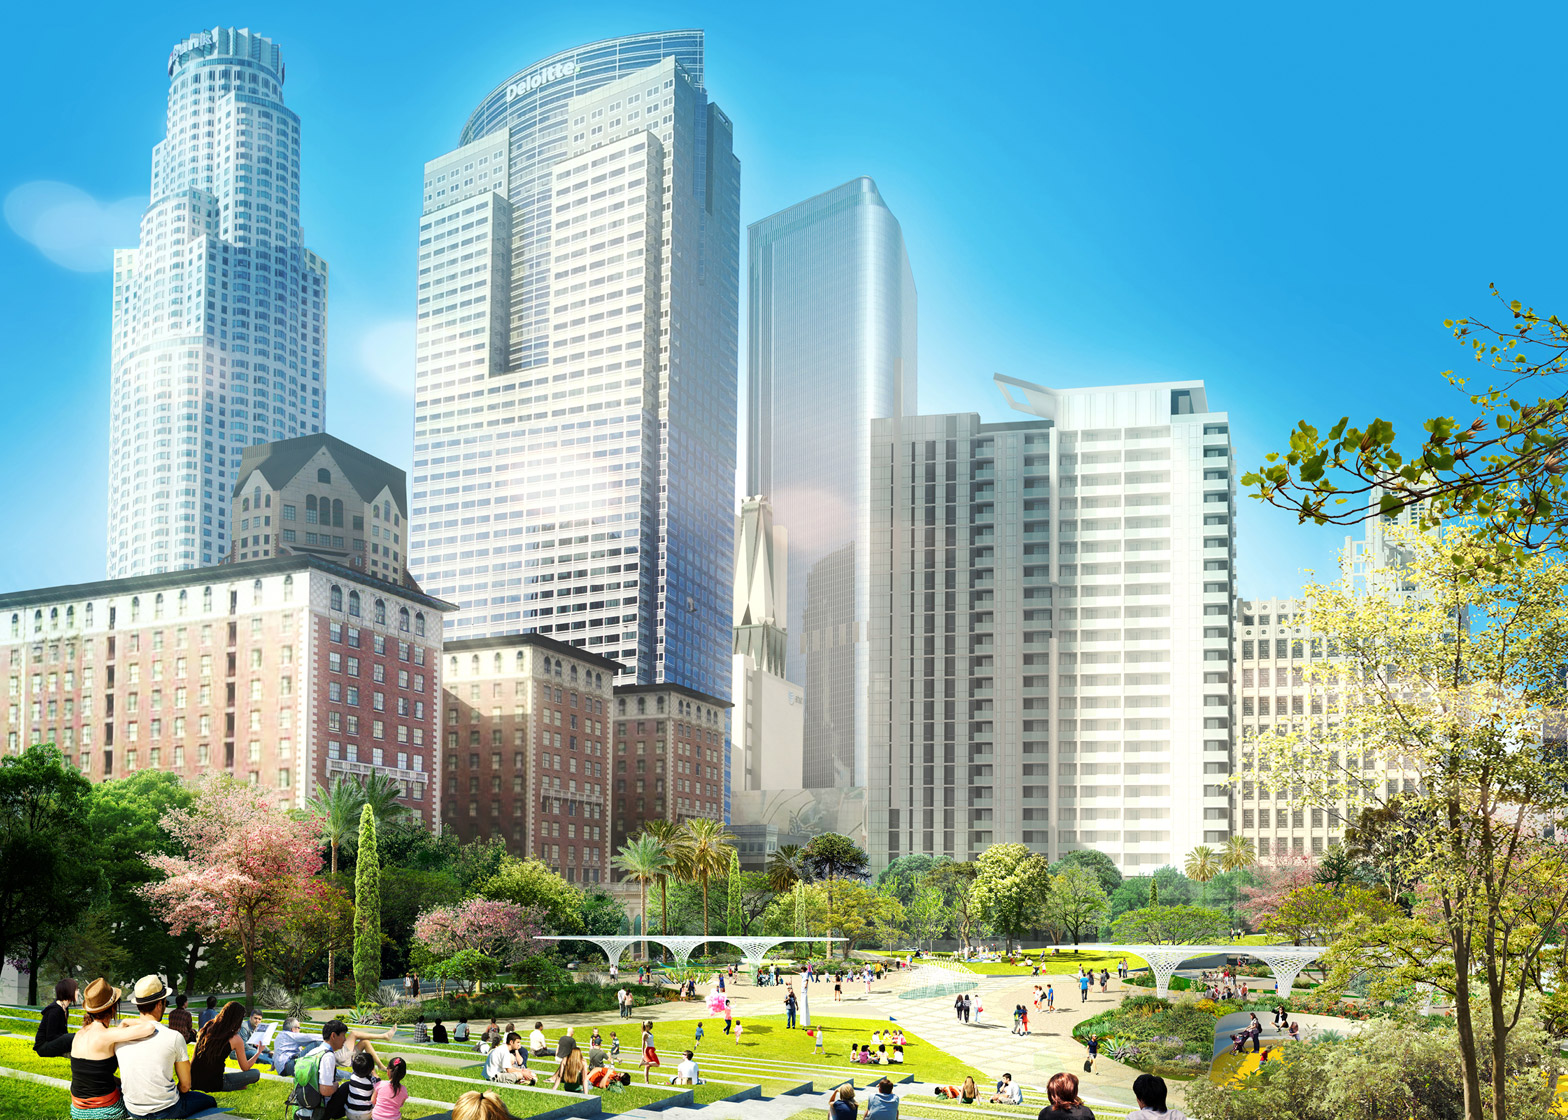 James Corner Field Operations and Fredrick Ficher and Partners Pershing square renovation proposal architecture news Los Angeles LA USA